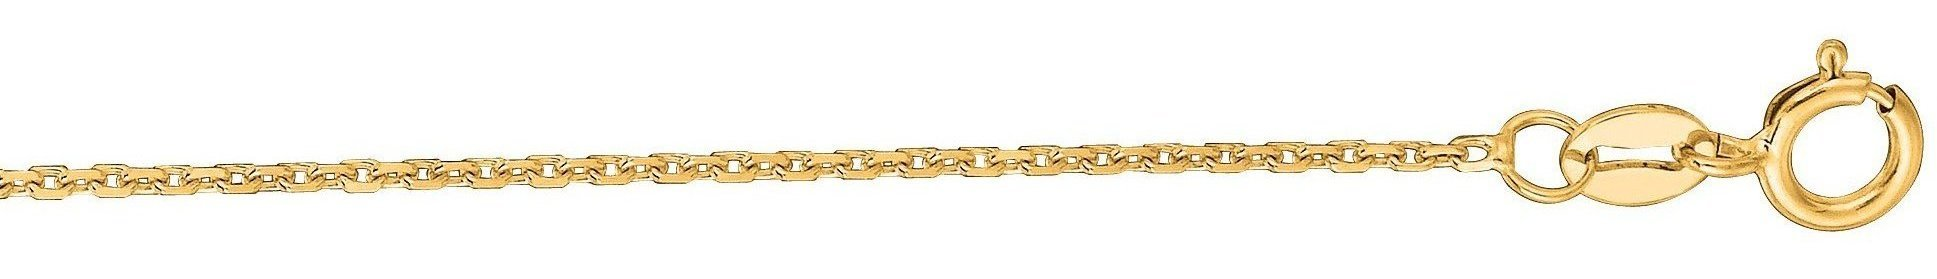 "20"" 10K Yellow Gold 1.1mm (0.04"") Polished Diamond Cut Cable Chain w/ Lobster Clasp"